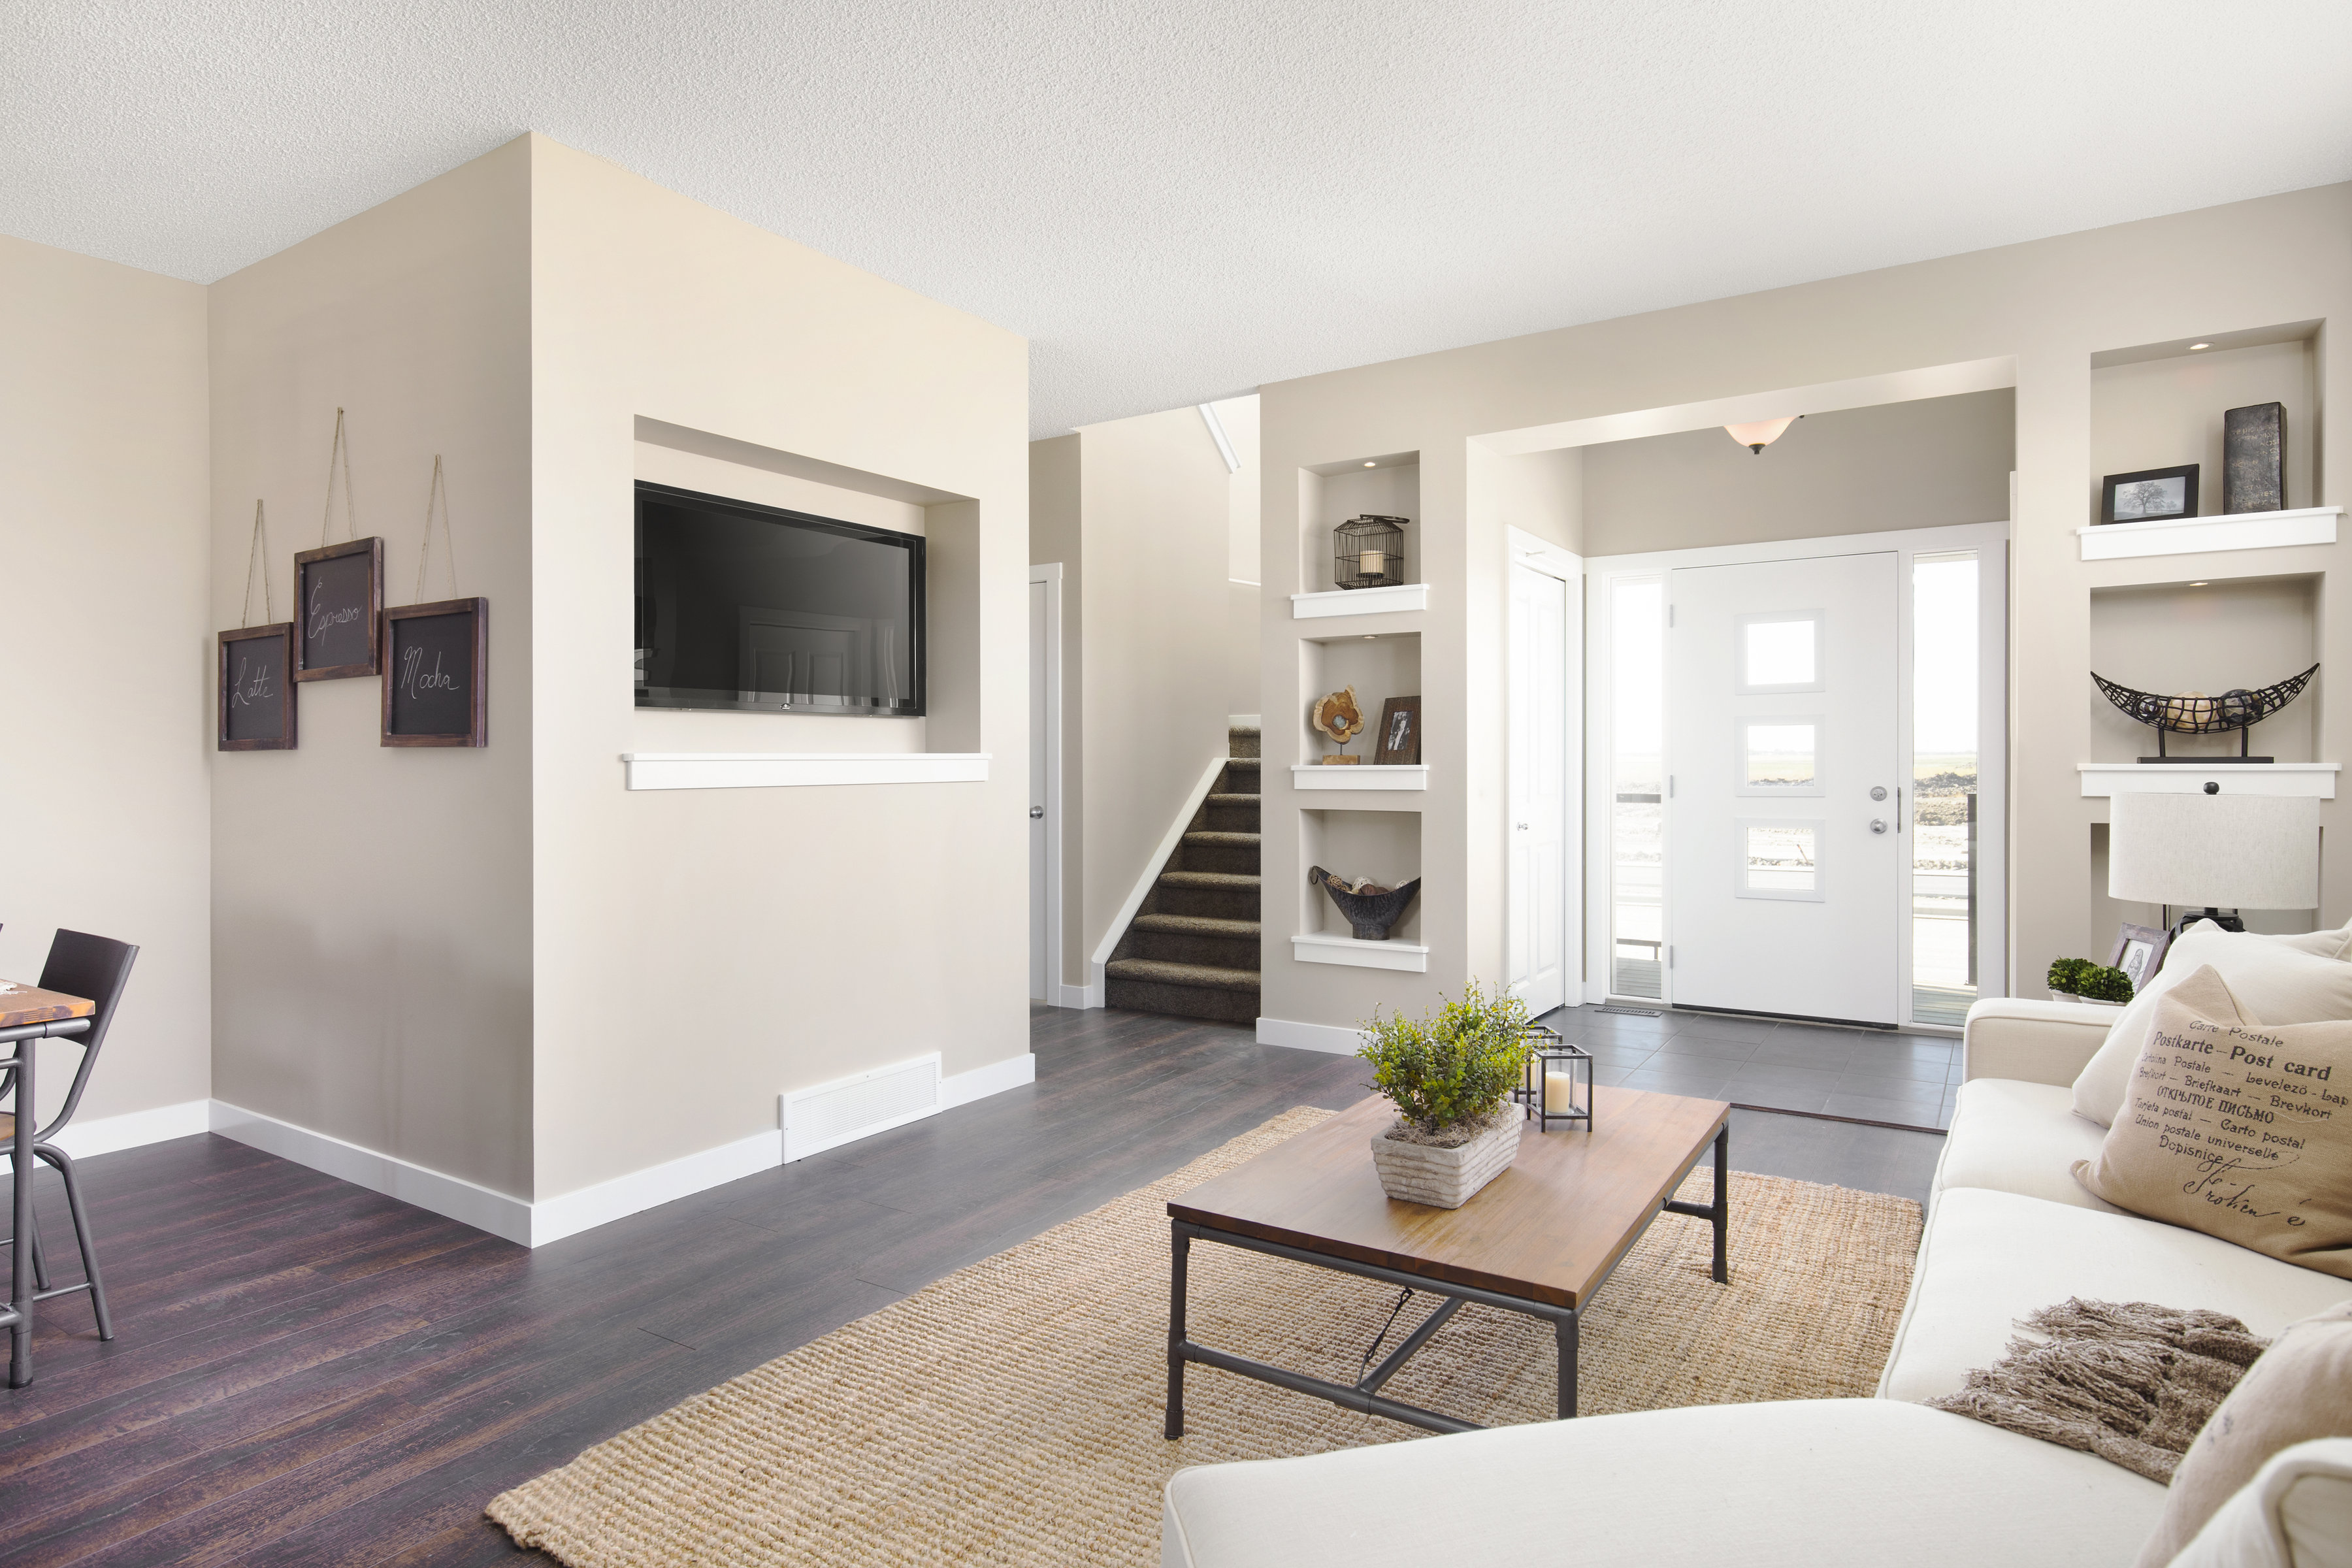 the front entrance and living room of a shane homes duplex home.